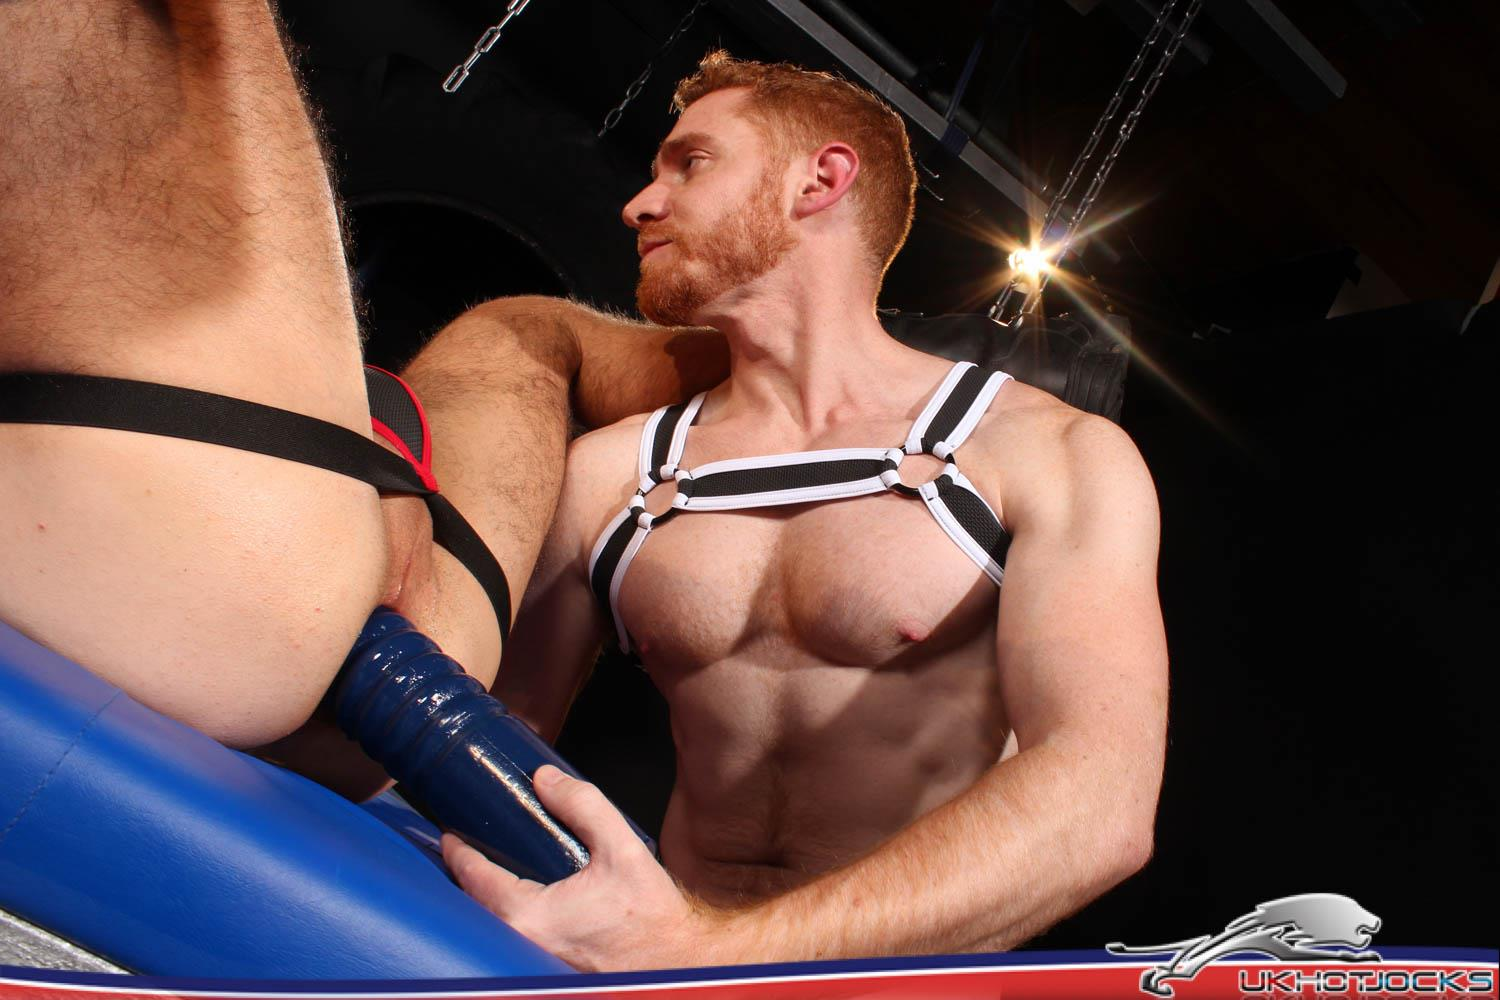 UK Hot Jocks Gaston Croupier and Leander Big Uncut Ginger Cock 27 Gaston Croupier Takes Leanders Big Uncut Cock And A Huge Dildo!